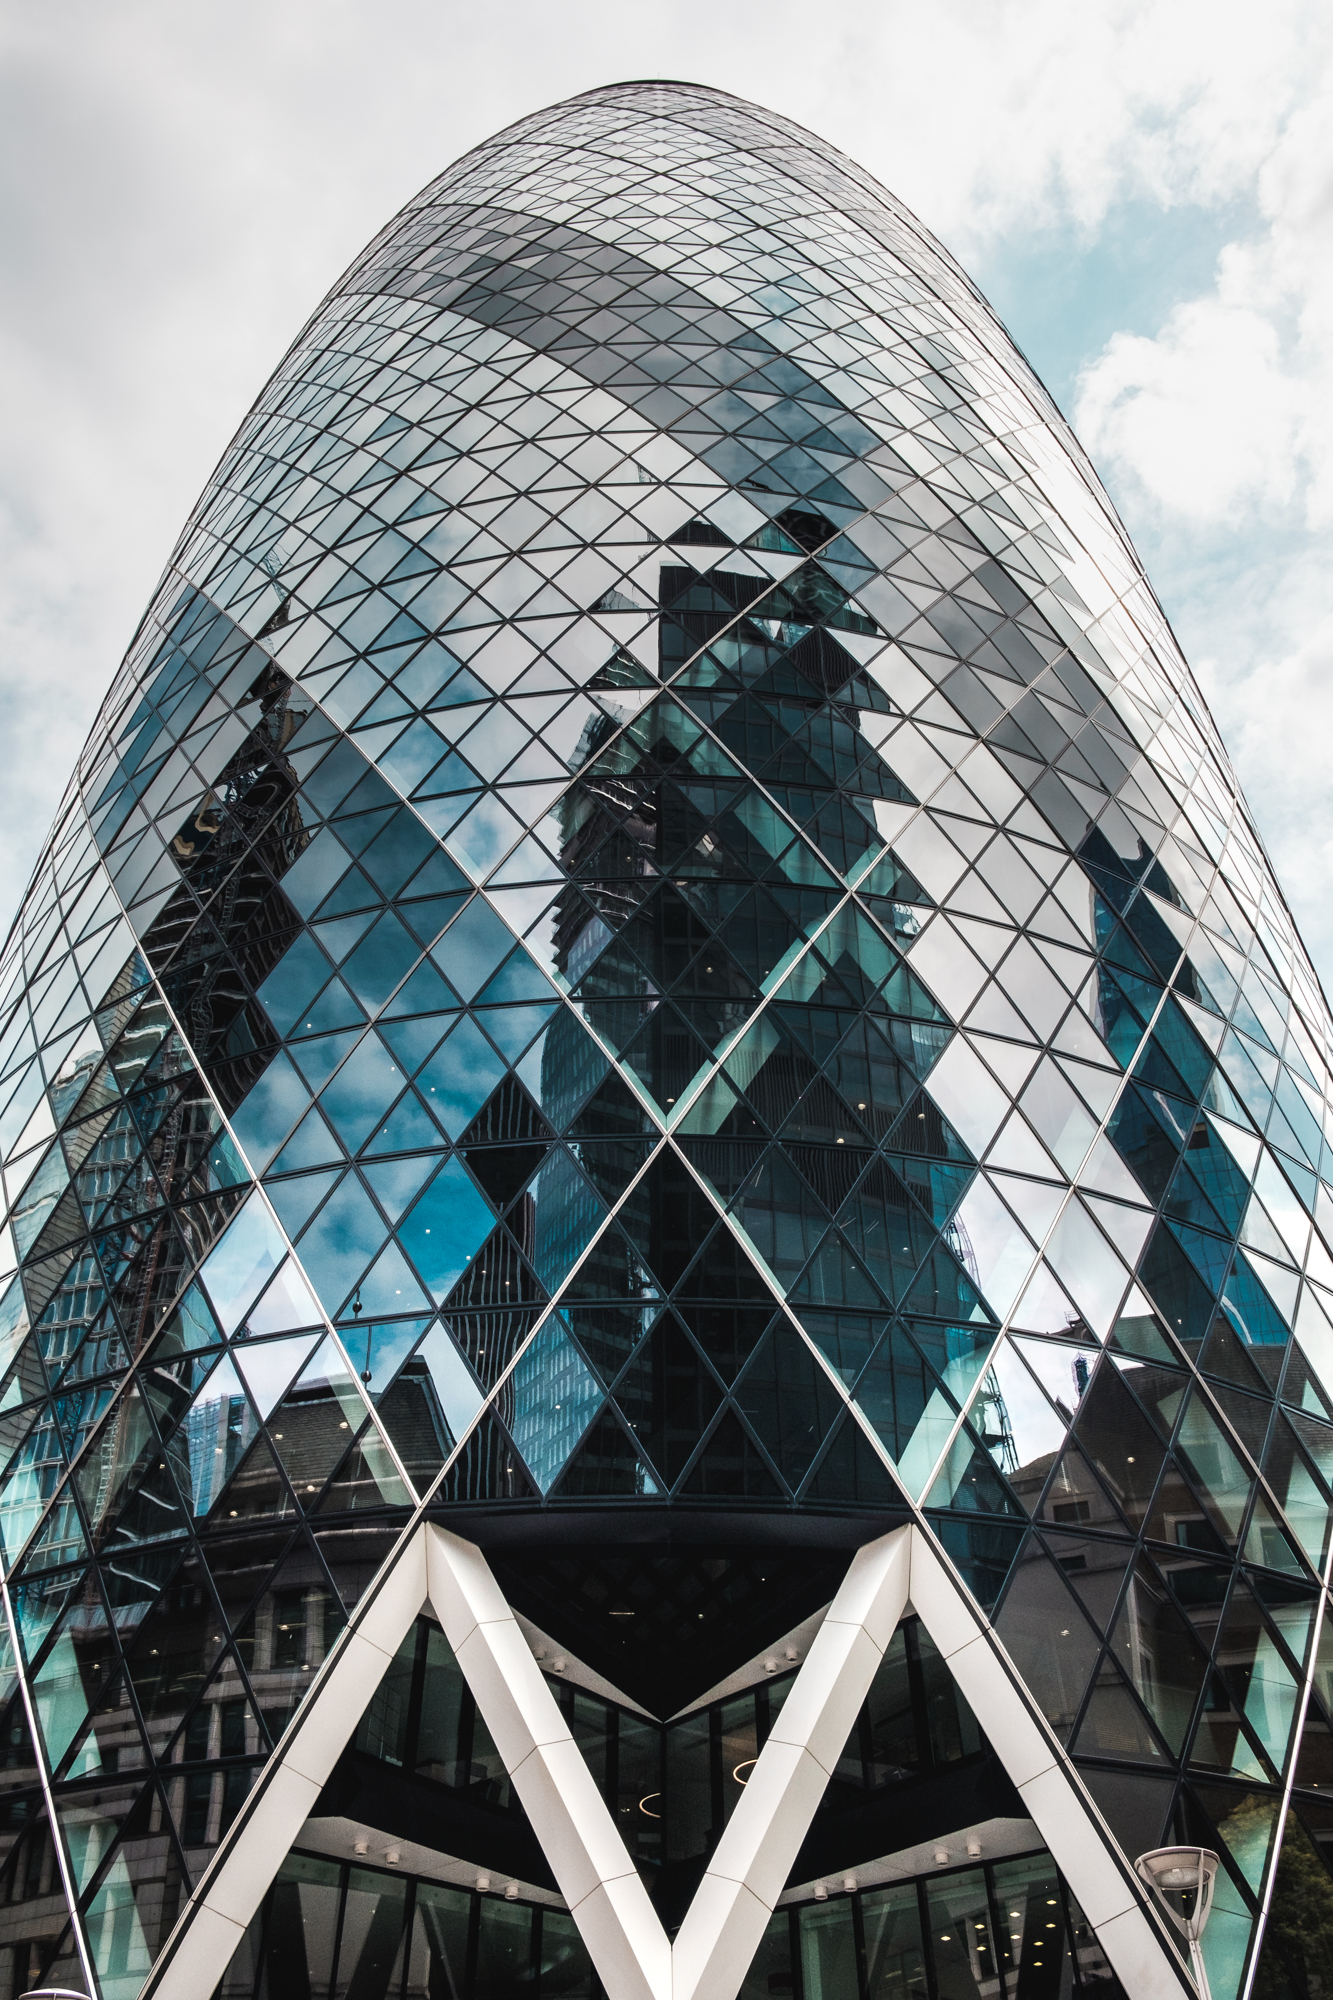 Photo of The Gherkin in London by Trevor Sherwin